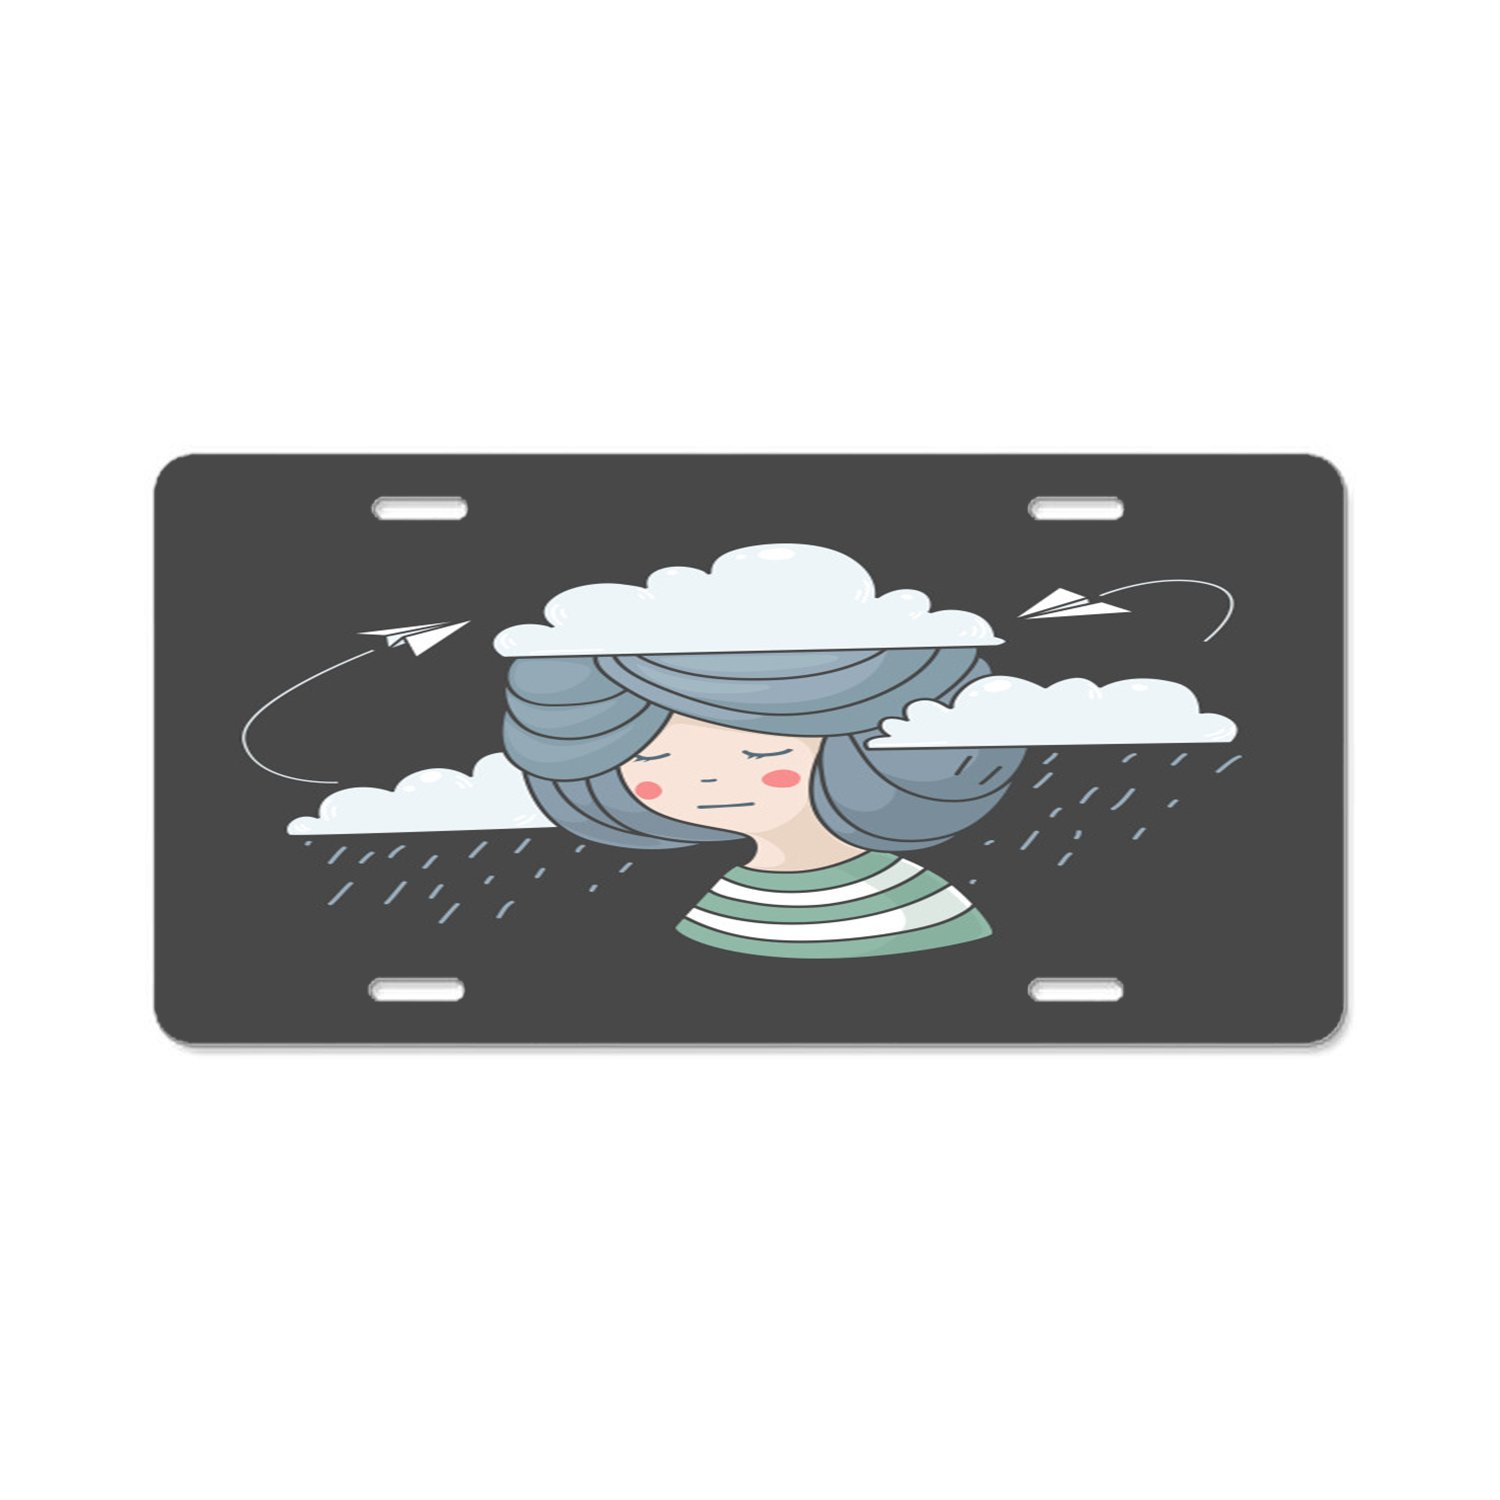 Pulongpoq The Glass is Refillable Aluminum License Plate Front License Plate Vanity Tag